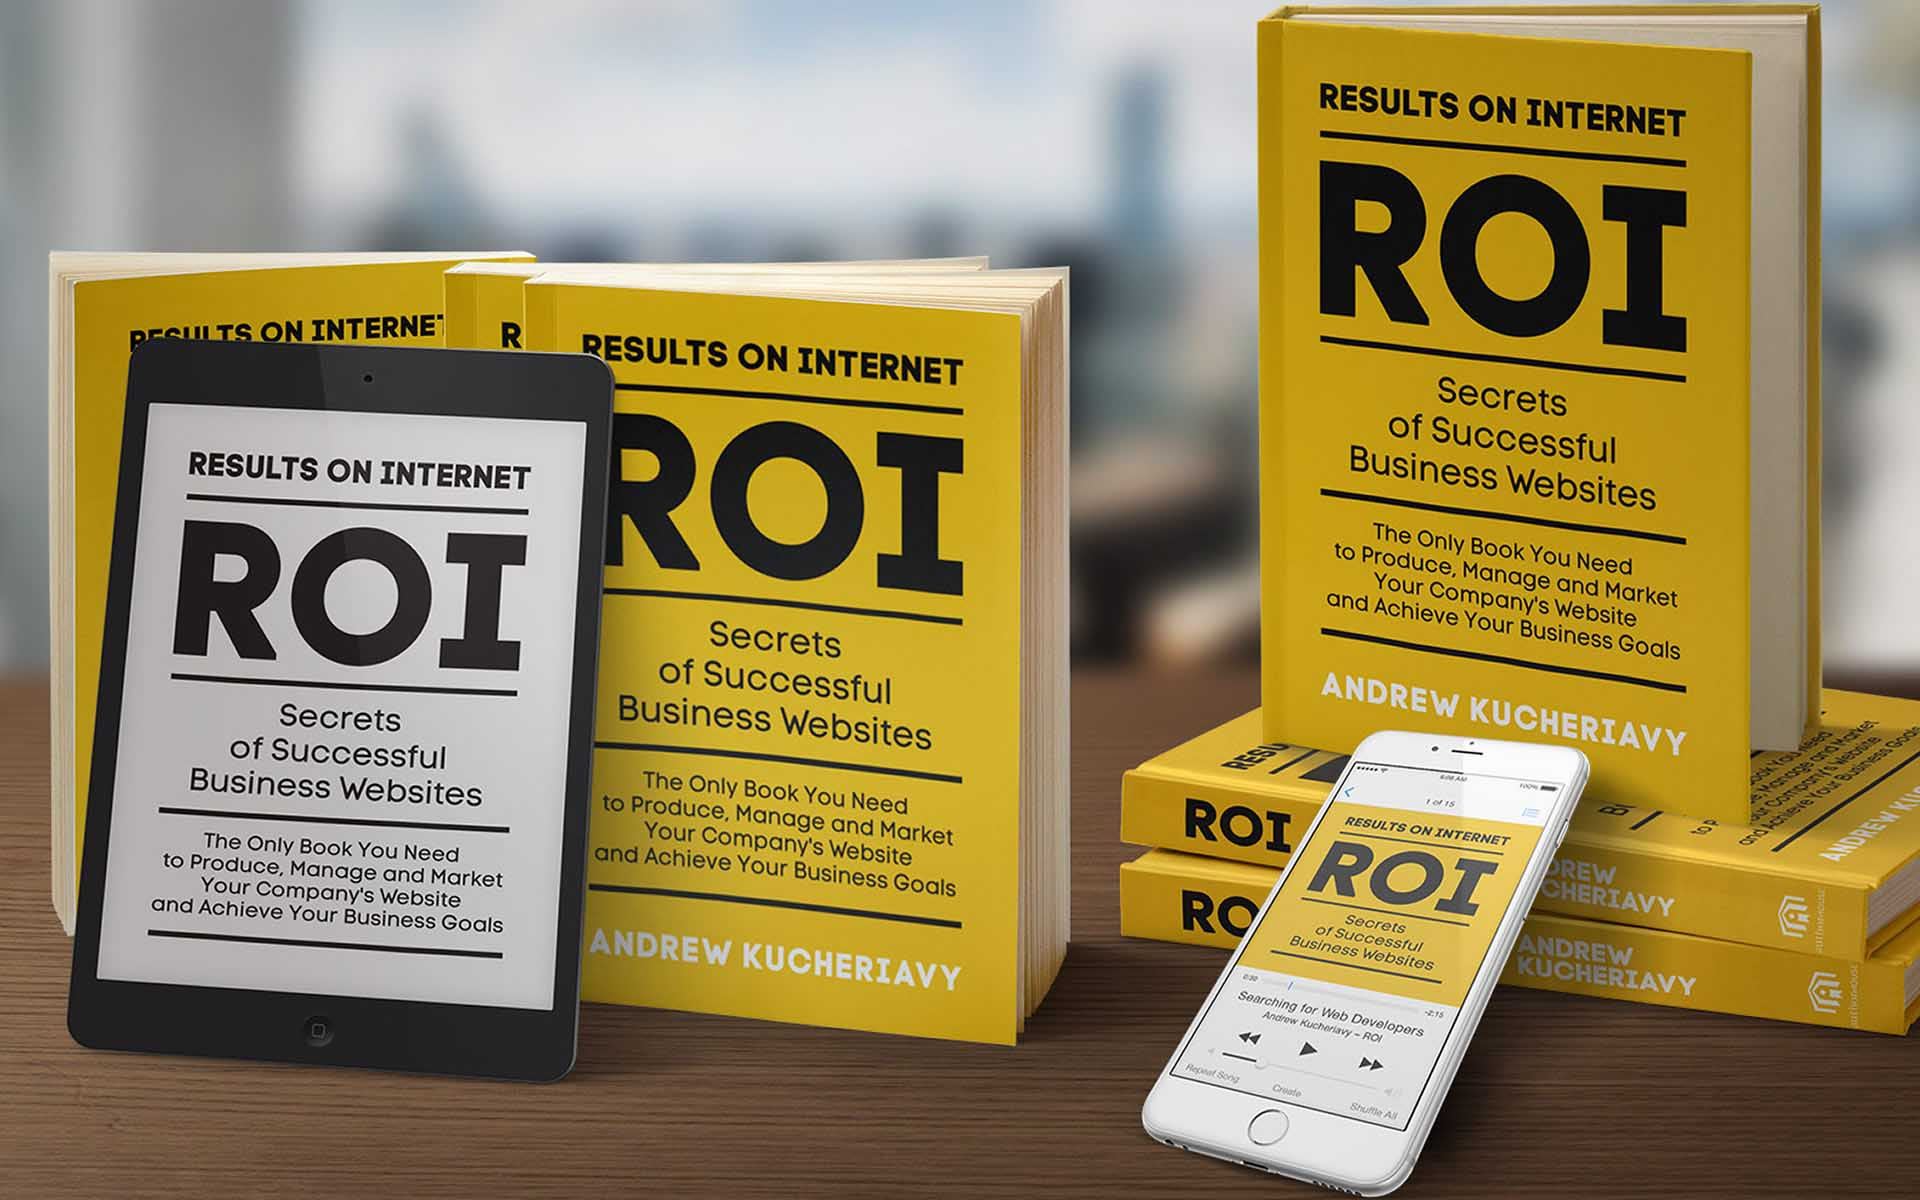 Results on Internet (ROI) Book is Published by Intechnic.jpg